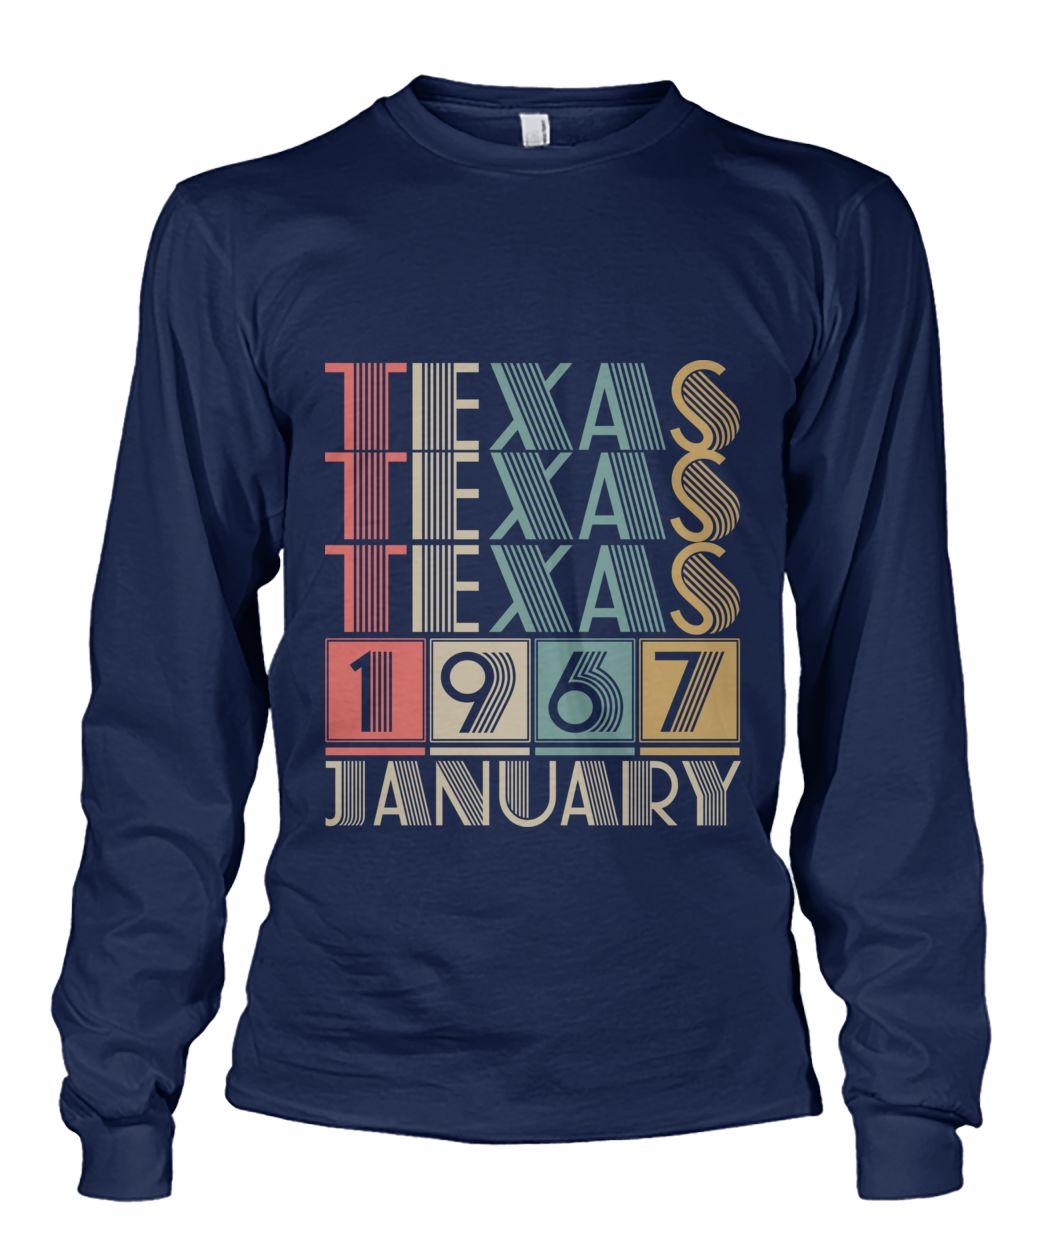 Born in Texas in January 1967 t shirt-Short Sleeves - TEEHOT.COM